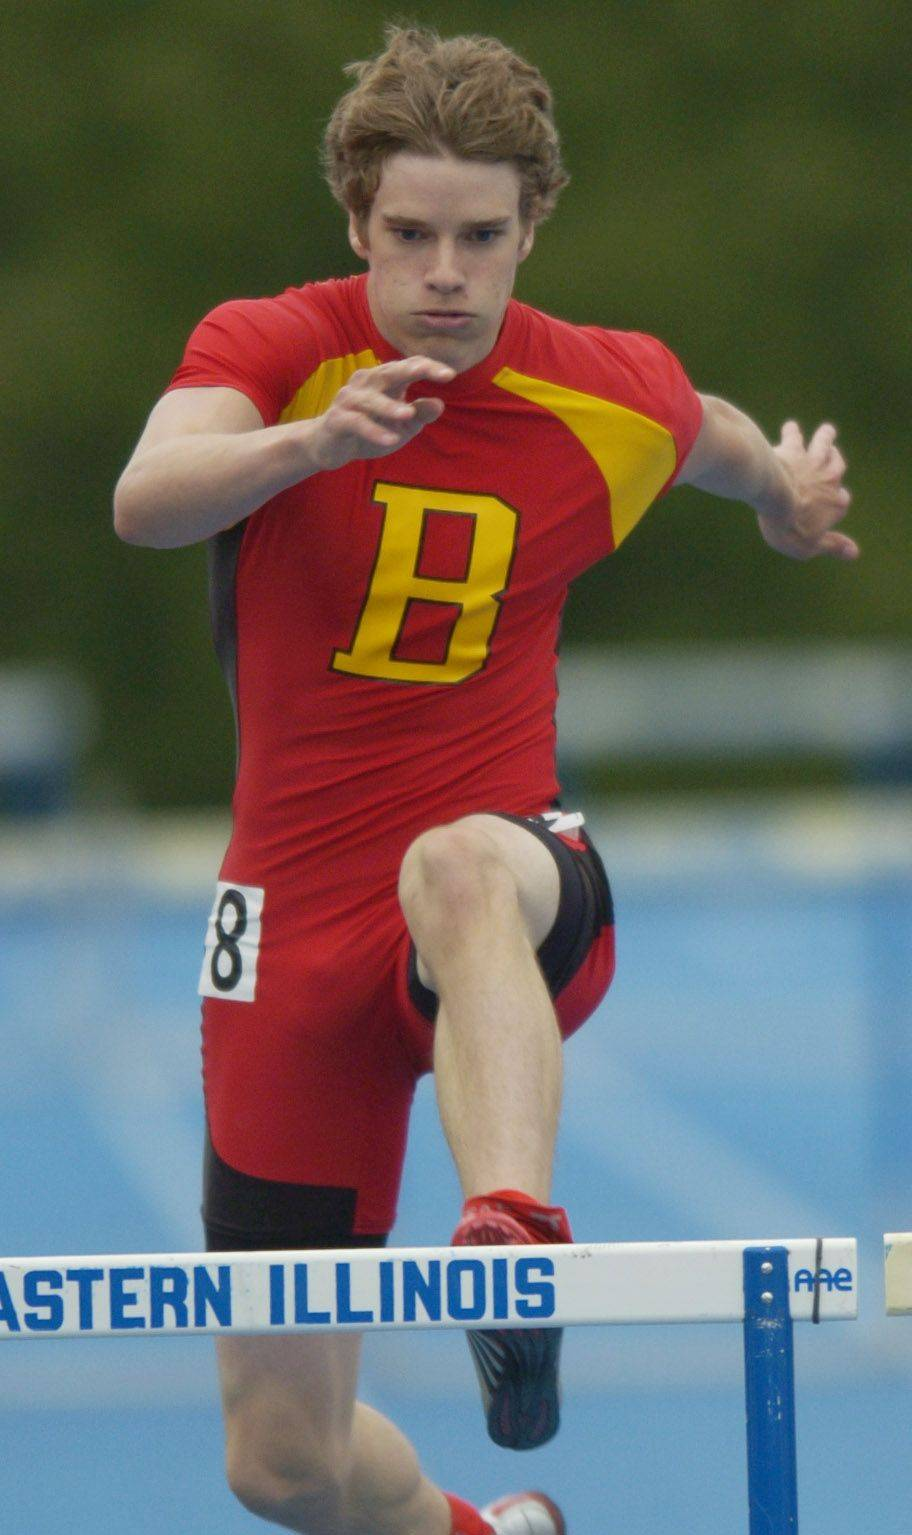 Batavia's David Voland competes in the 300-meter intermediate hurdles during the boys state track finals in Charleston Saturday.